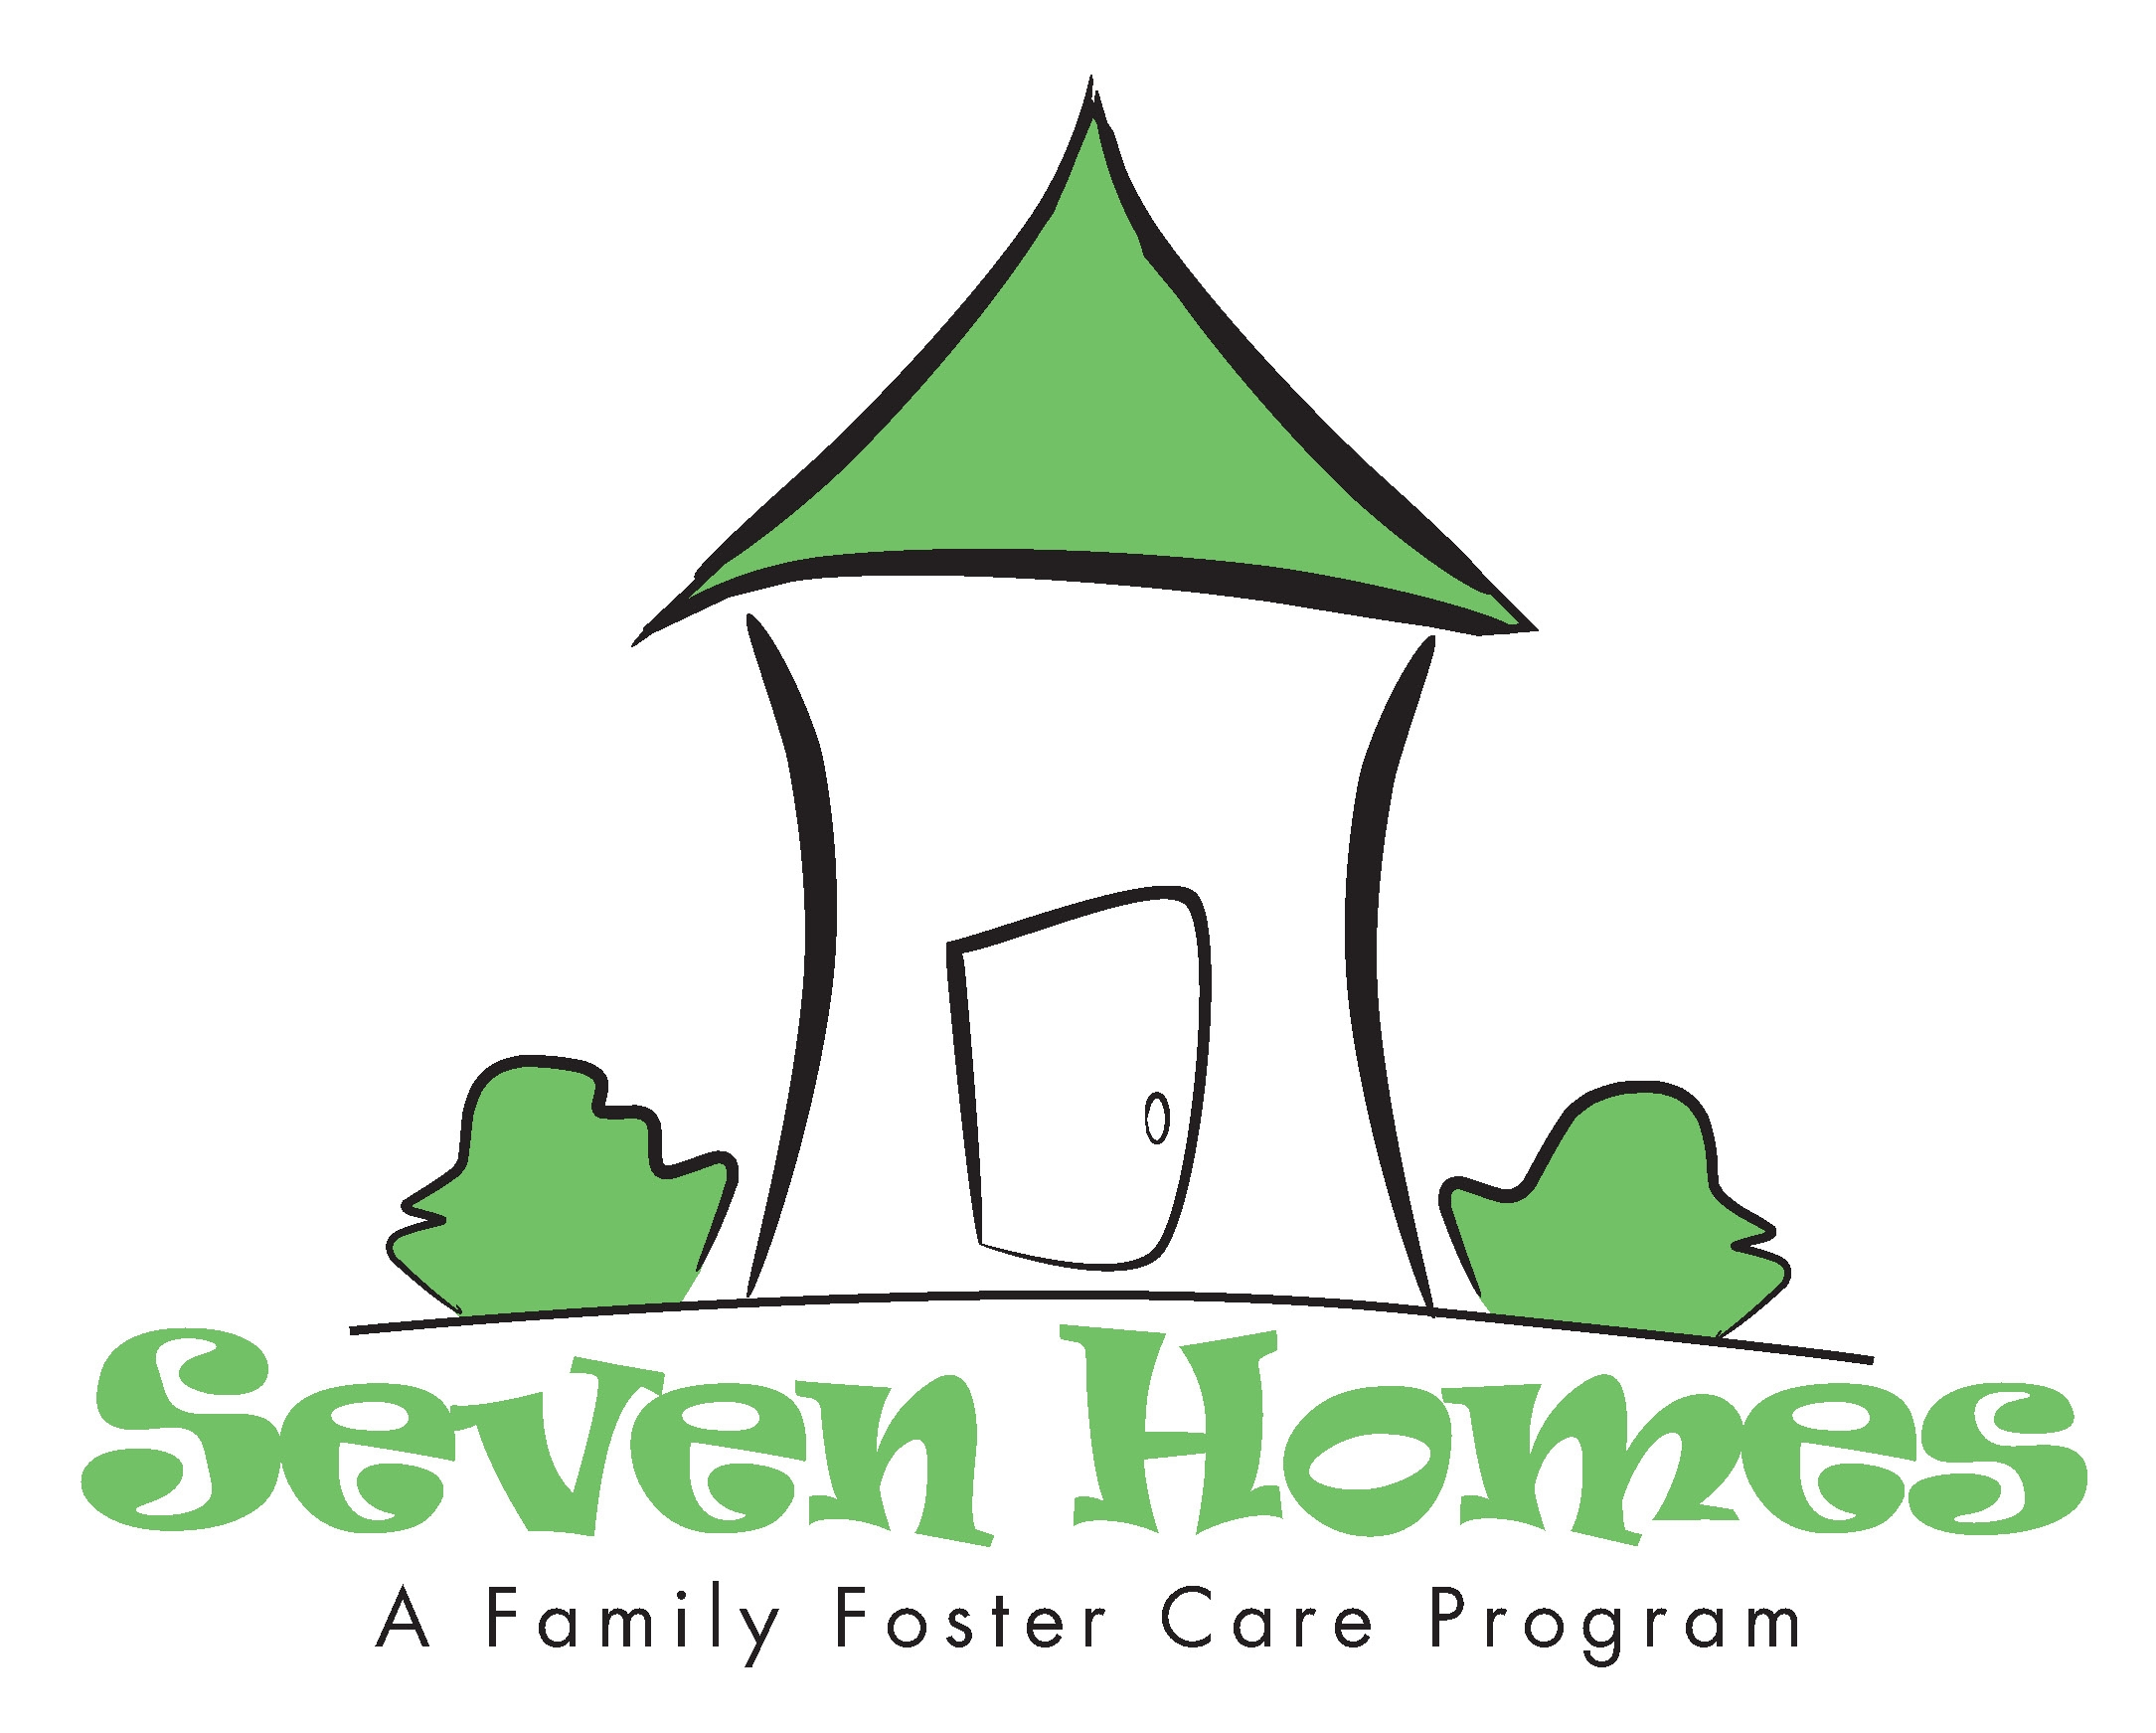 SEVEN_HOMES_LOGO_LARGE.jpg